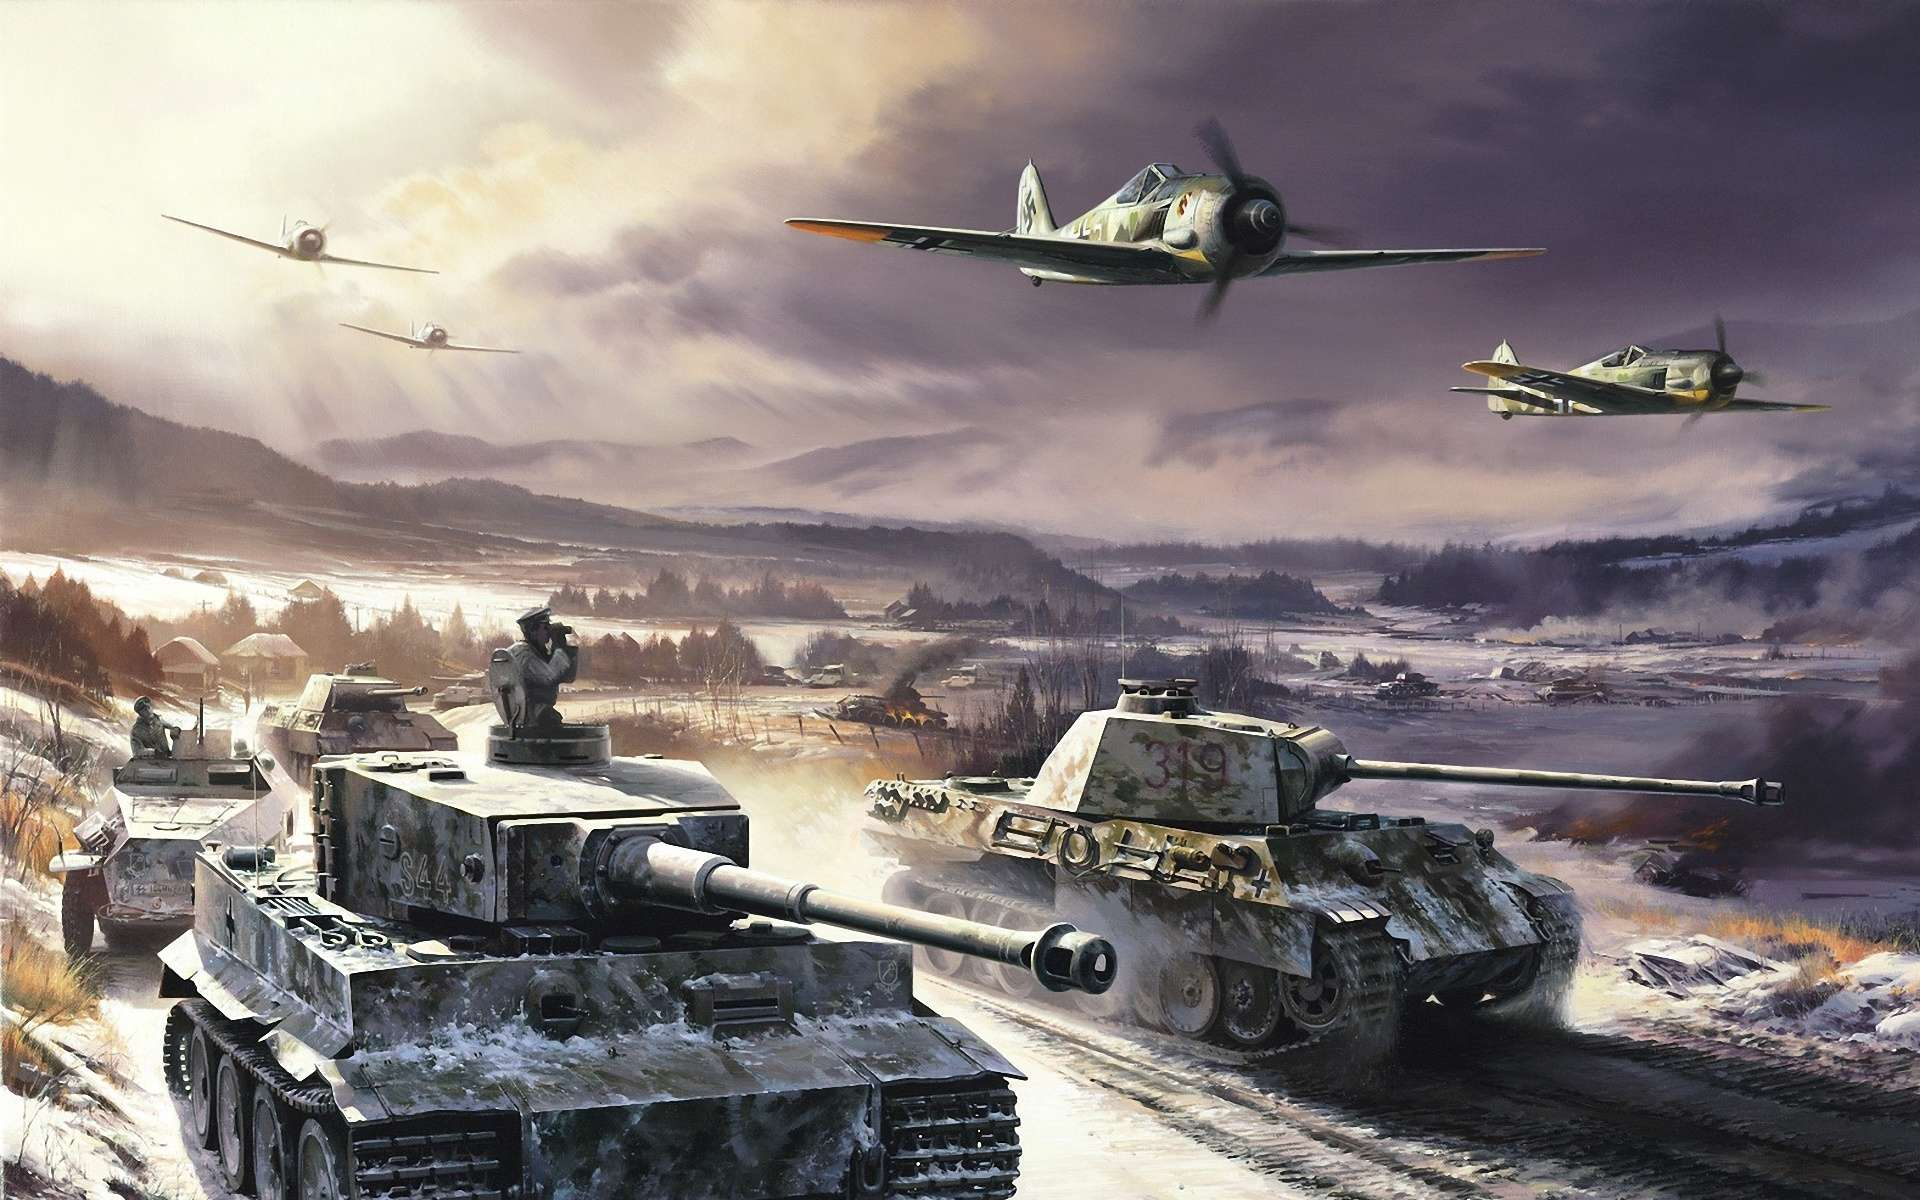 Tiger Tank HD Wallpapers Best Collection Of Tiger1 & Tiger2